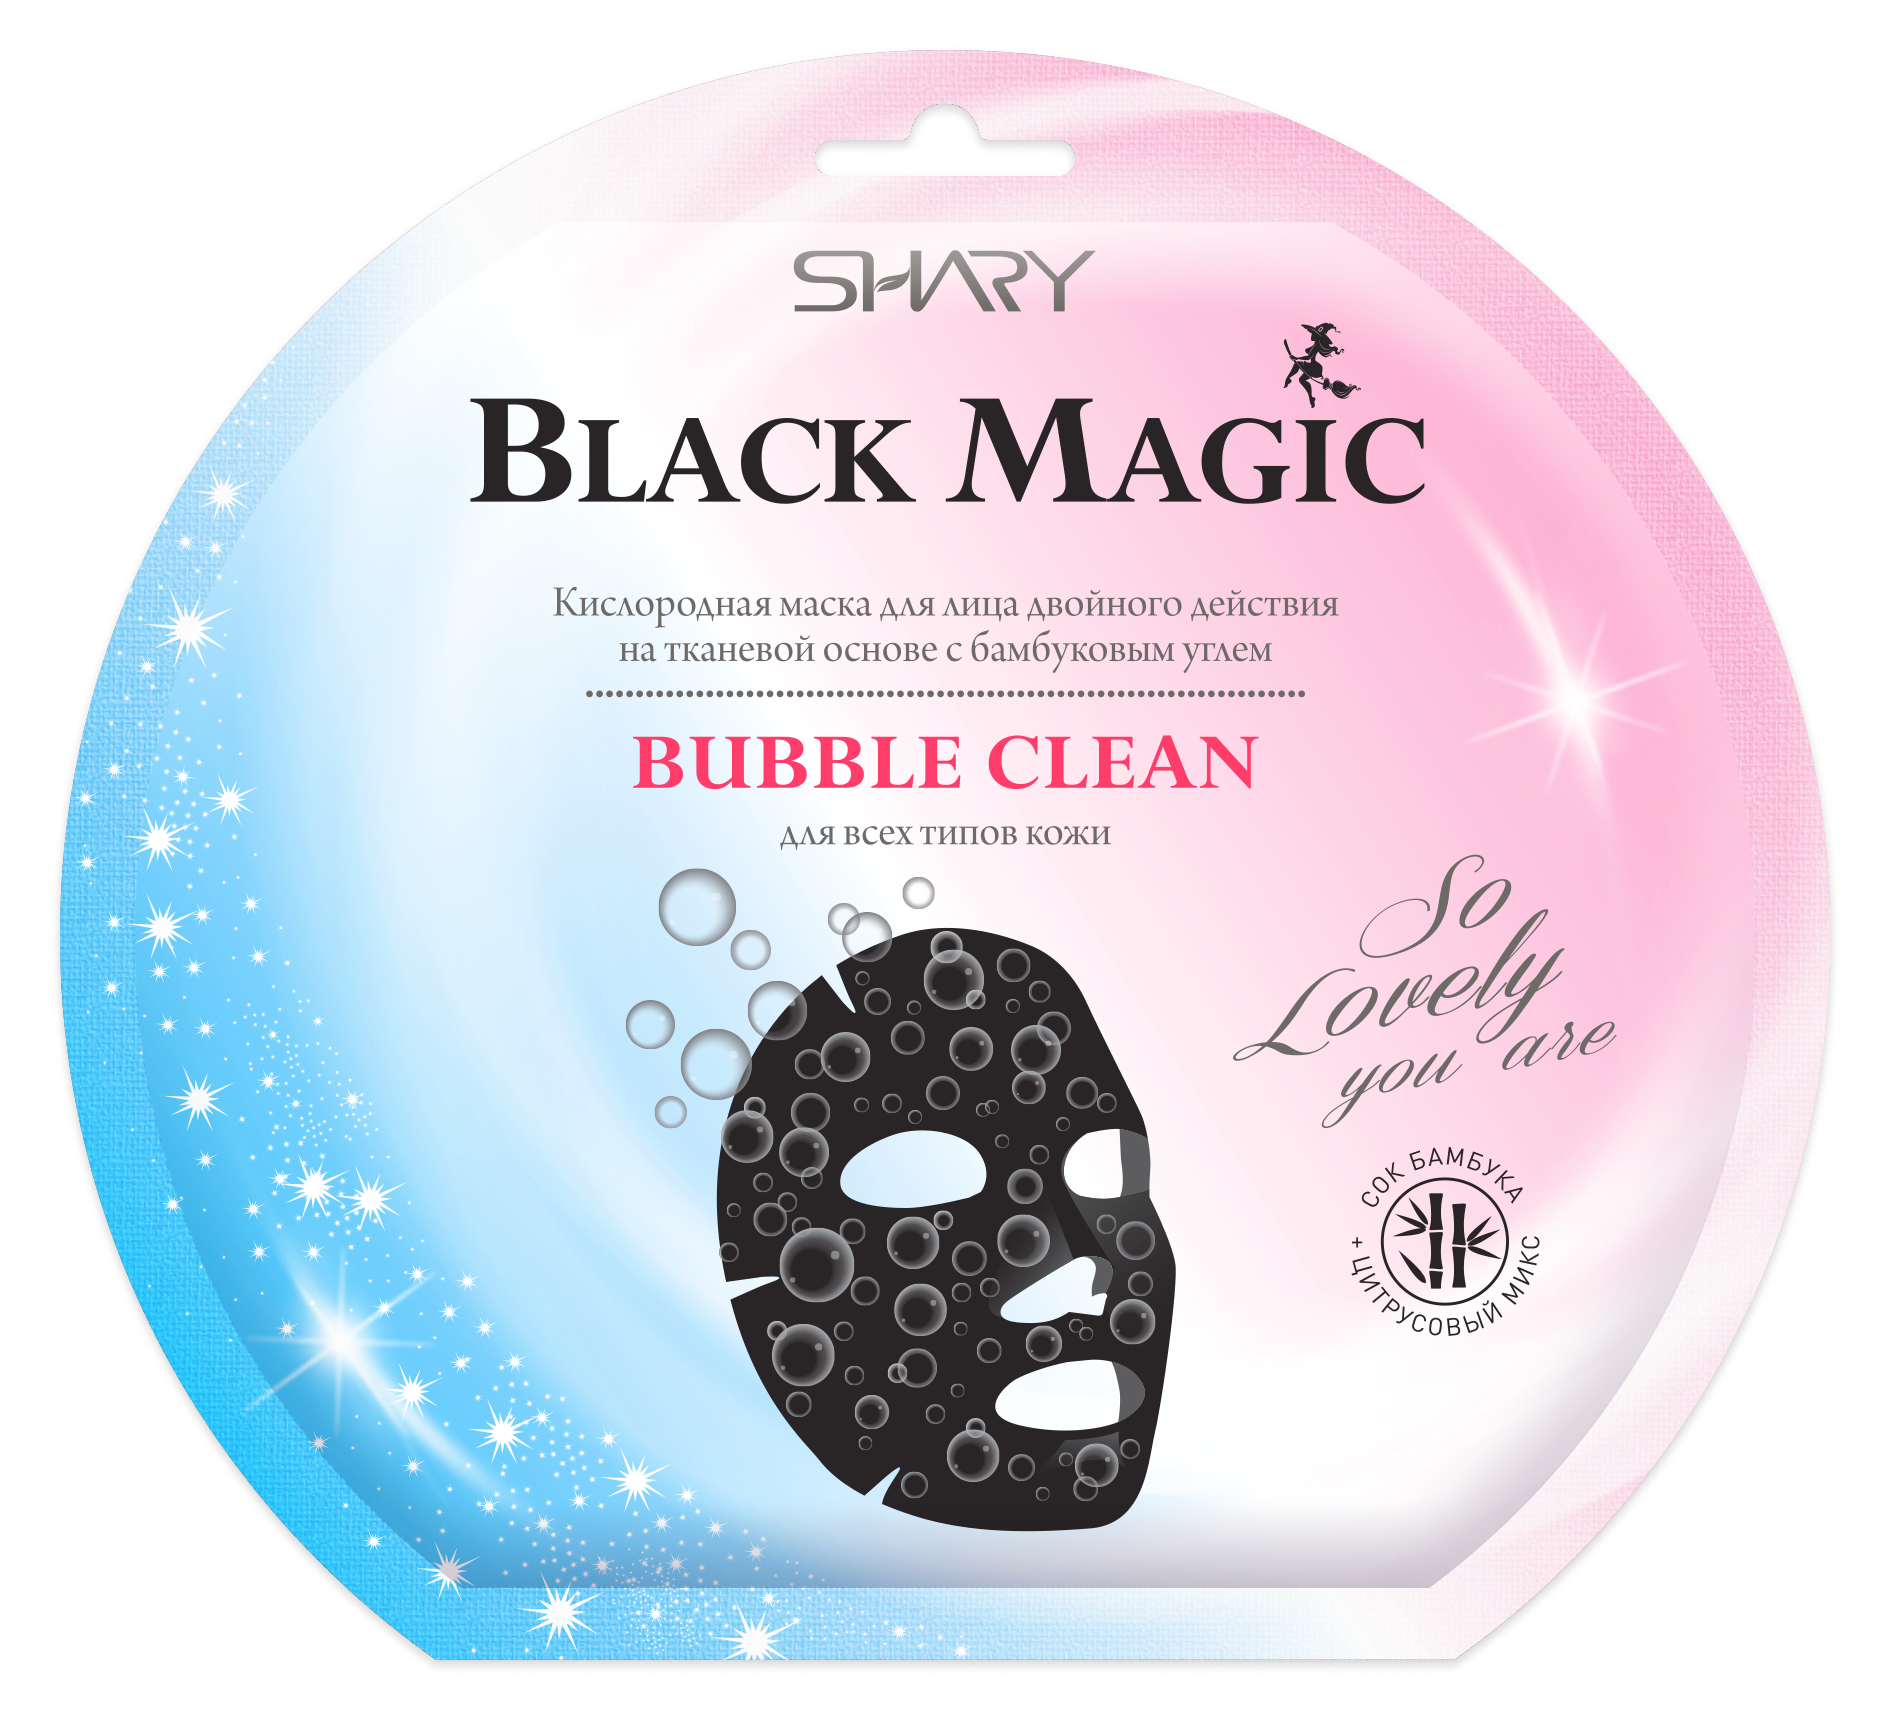 SHARY Маска кислородная для лица / Shary Black magic BUBBLE CLEAN, 20 г